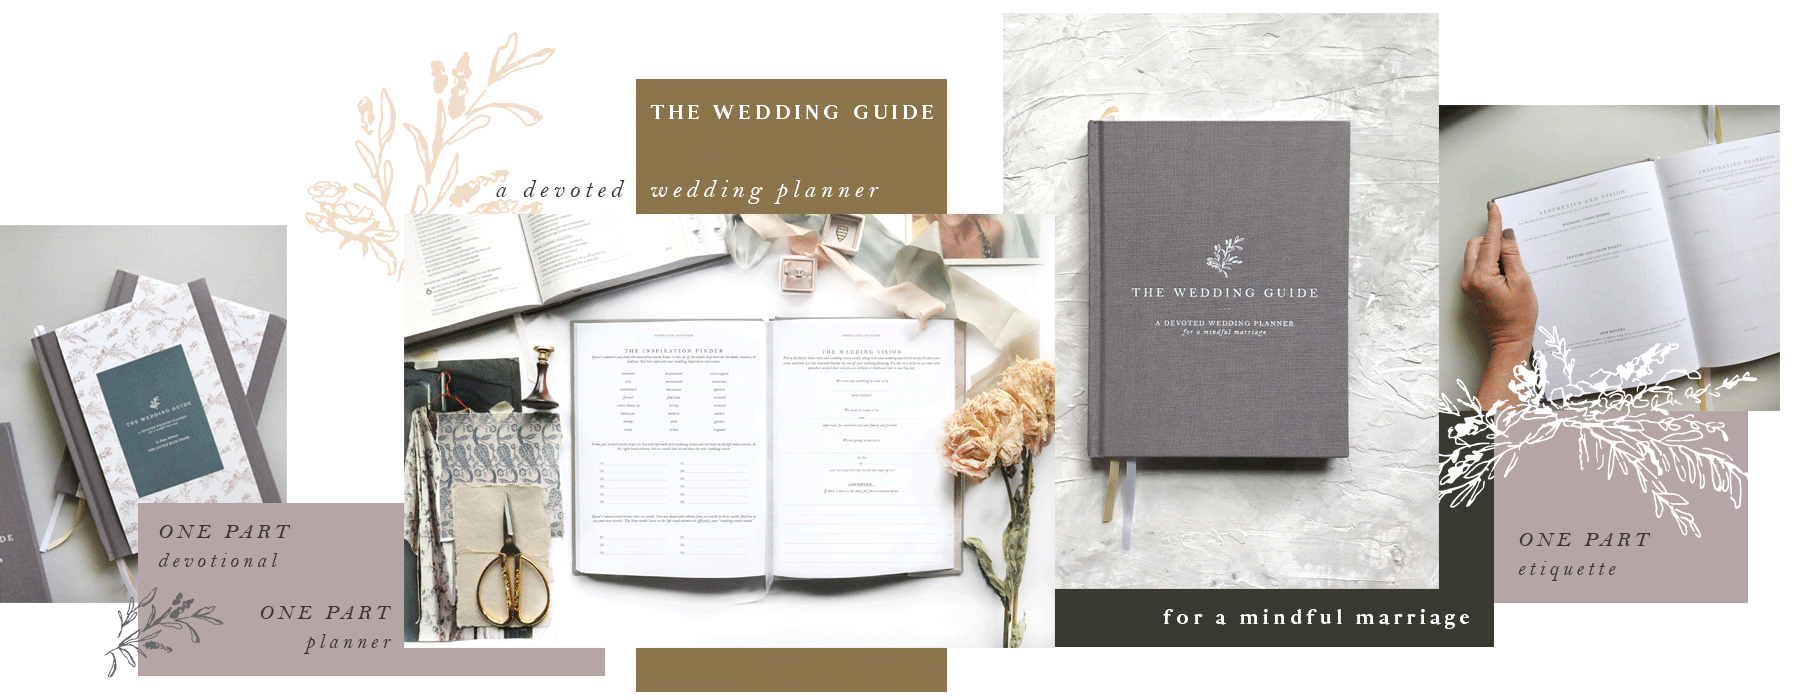 The-Wedding-Guide-Photo-Montage.png